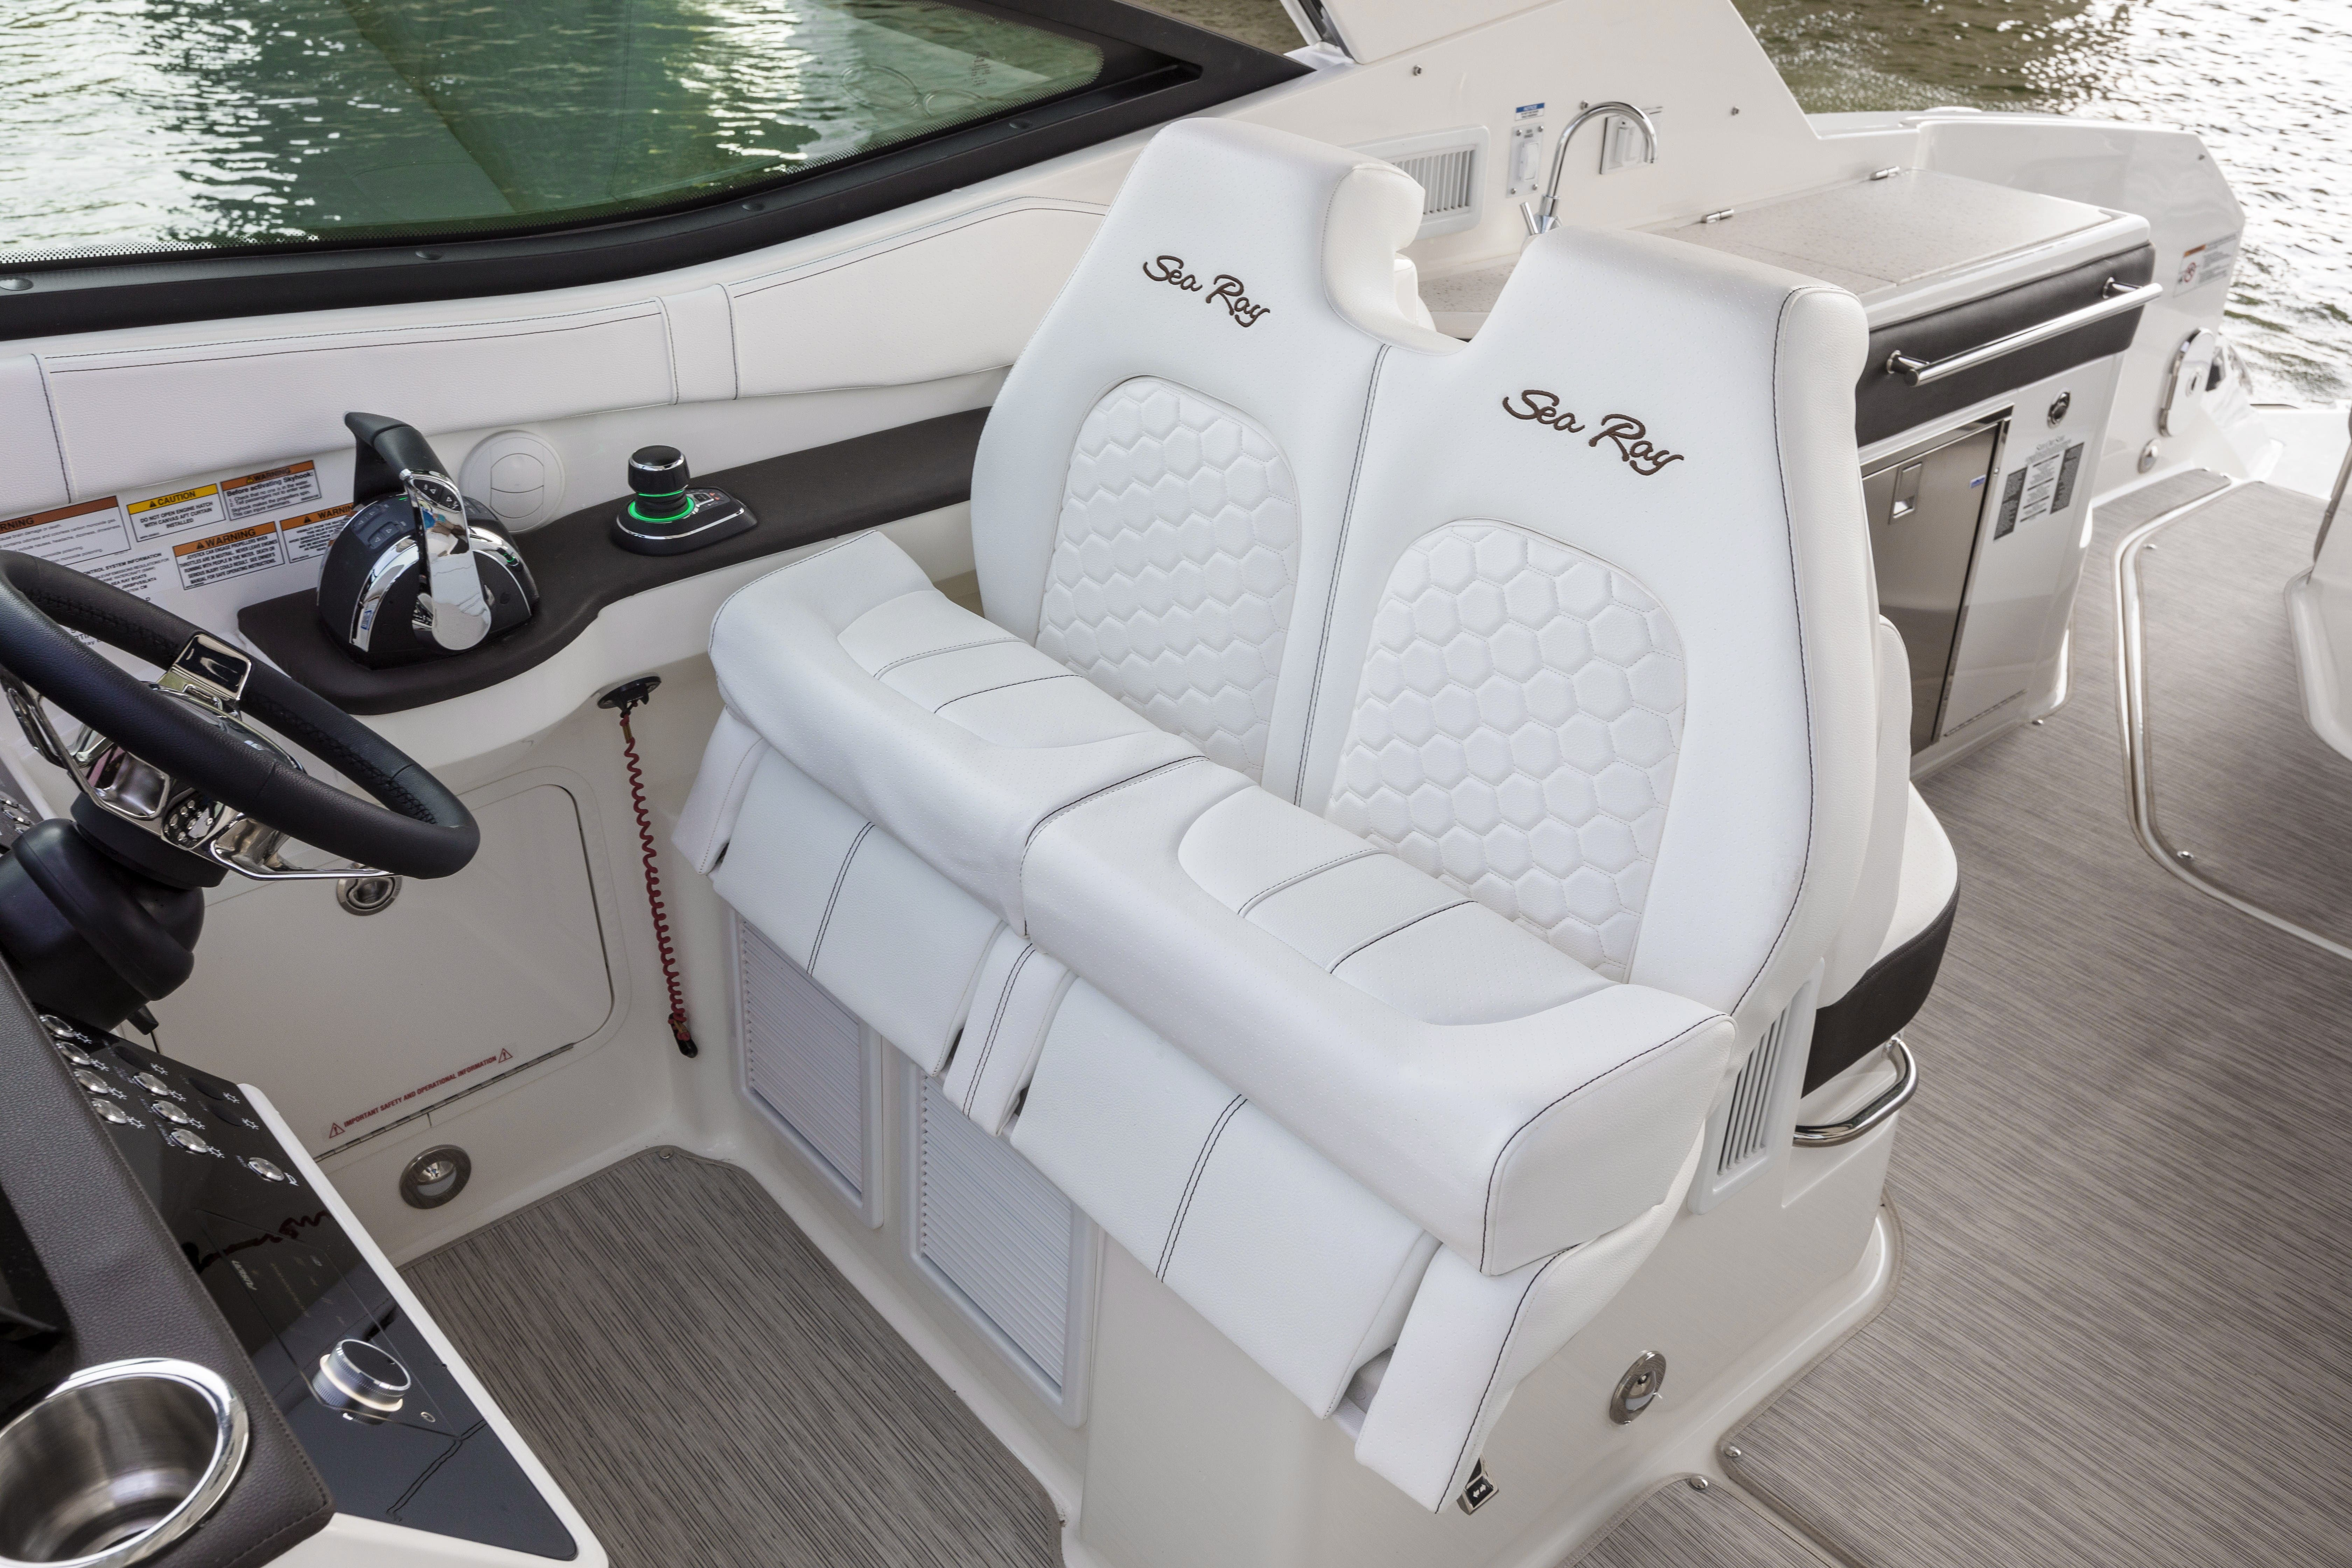 2021 Sea Ray boat for sale, model of the boat is 320 Sundancer & Image # 8 of 24